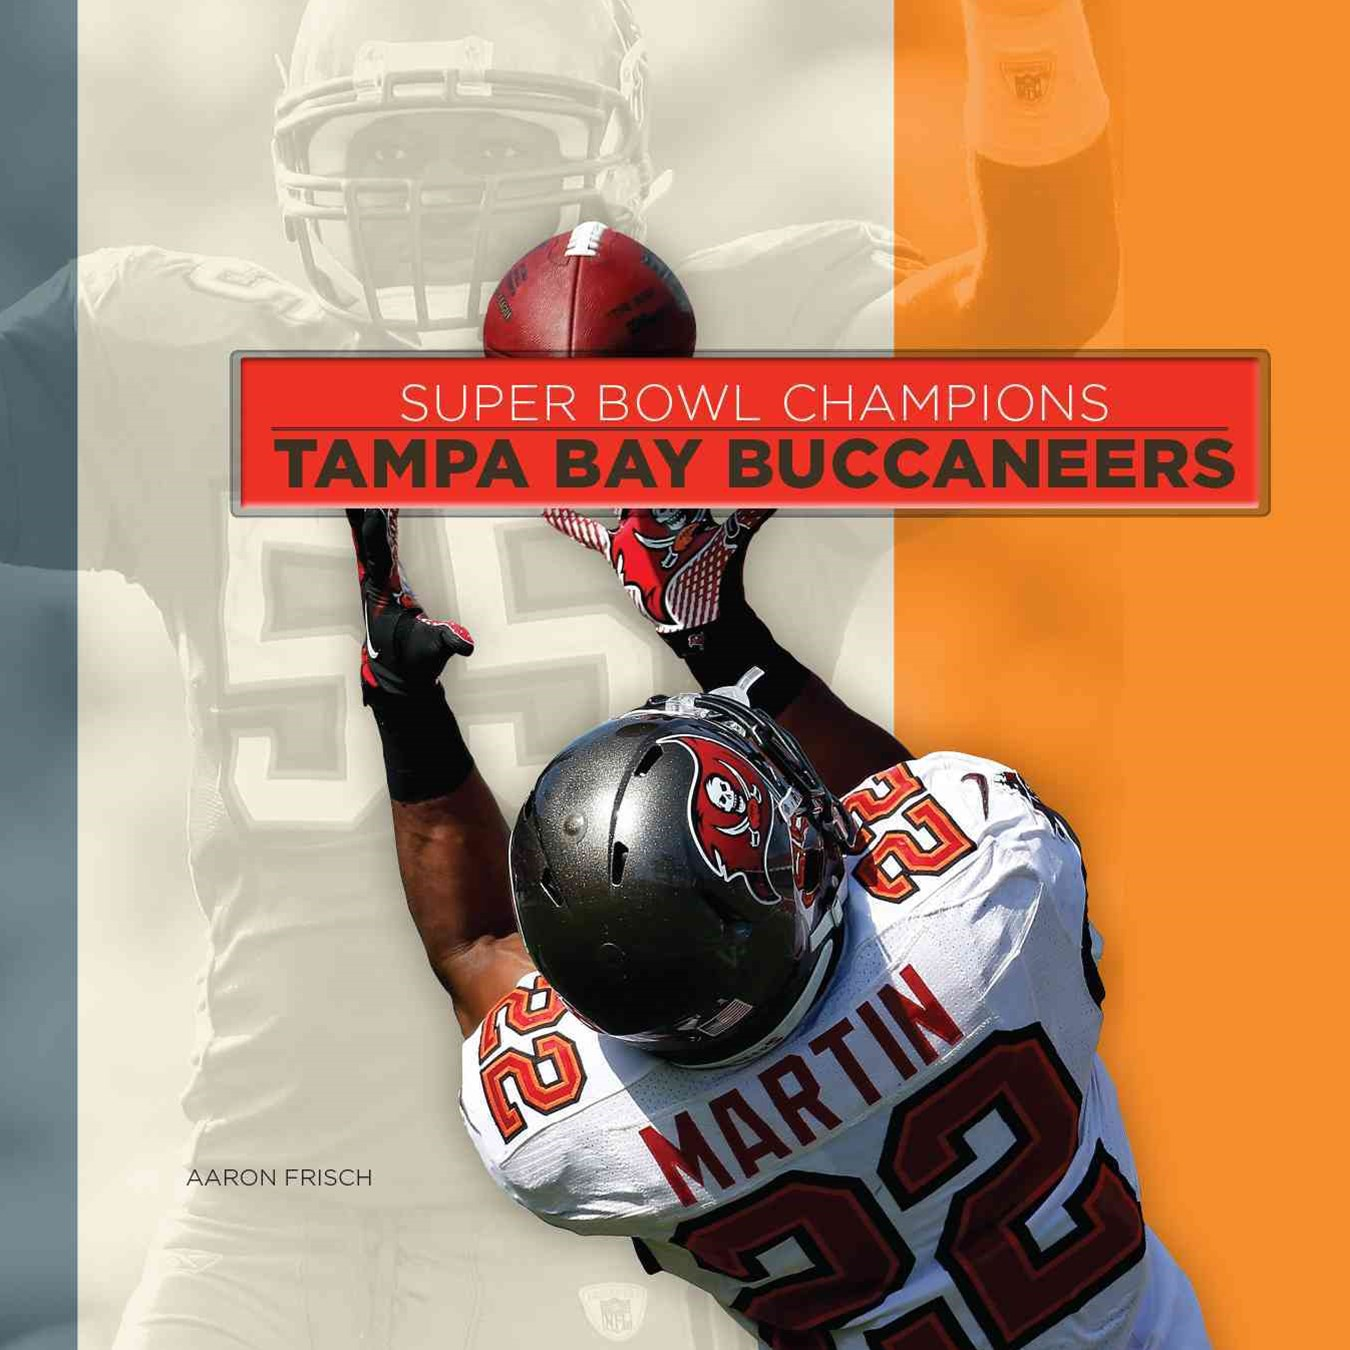 Super Bowl Champions: Tampa Bay Buccaneers